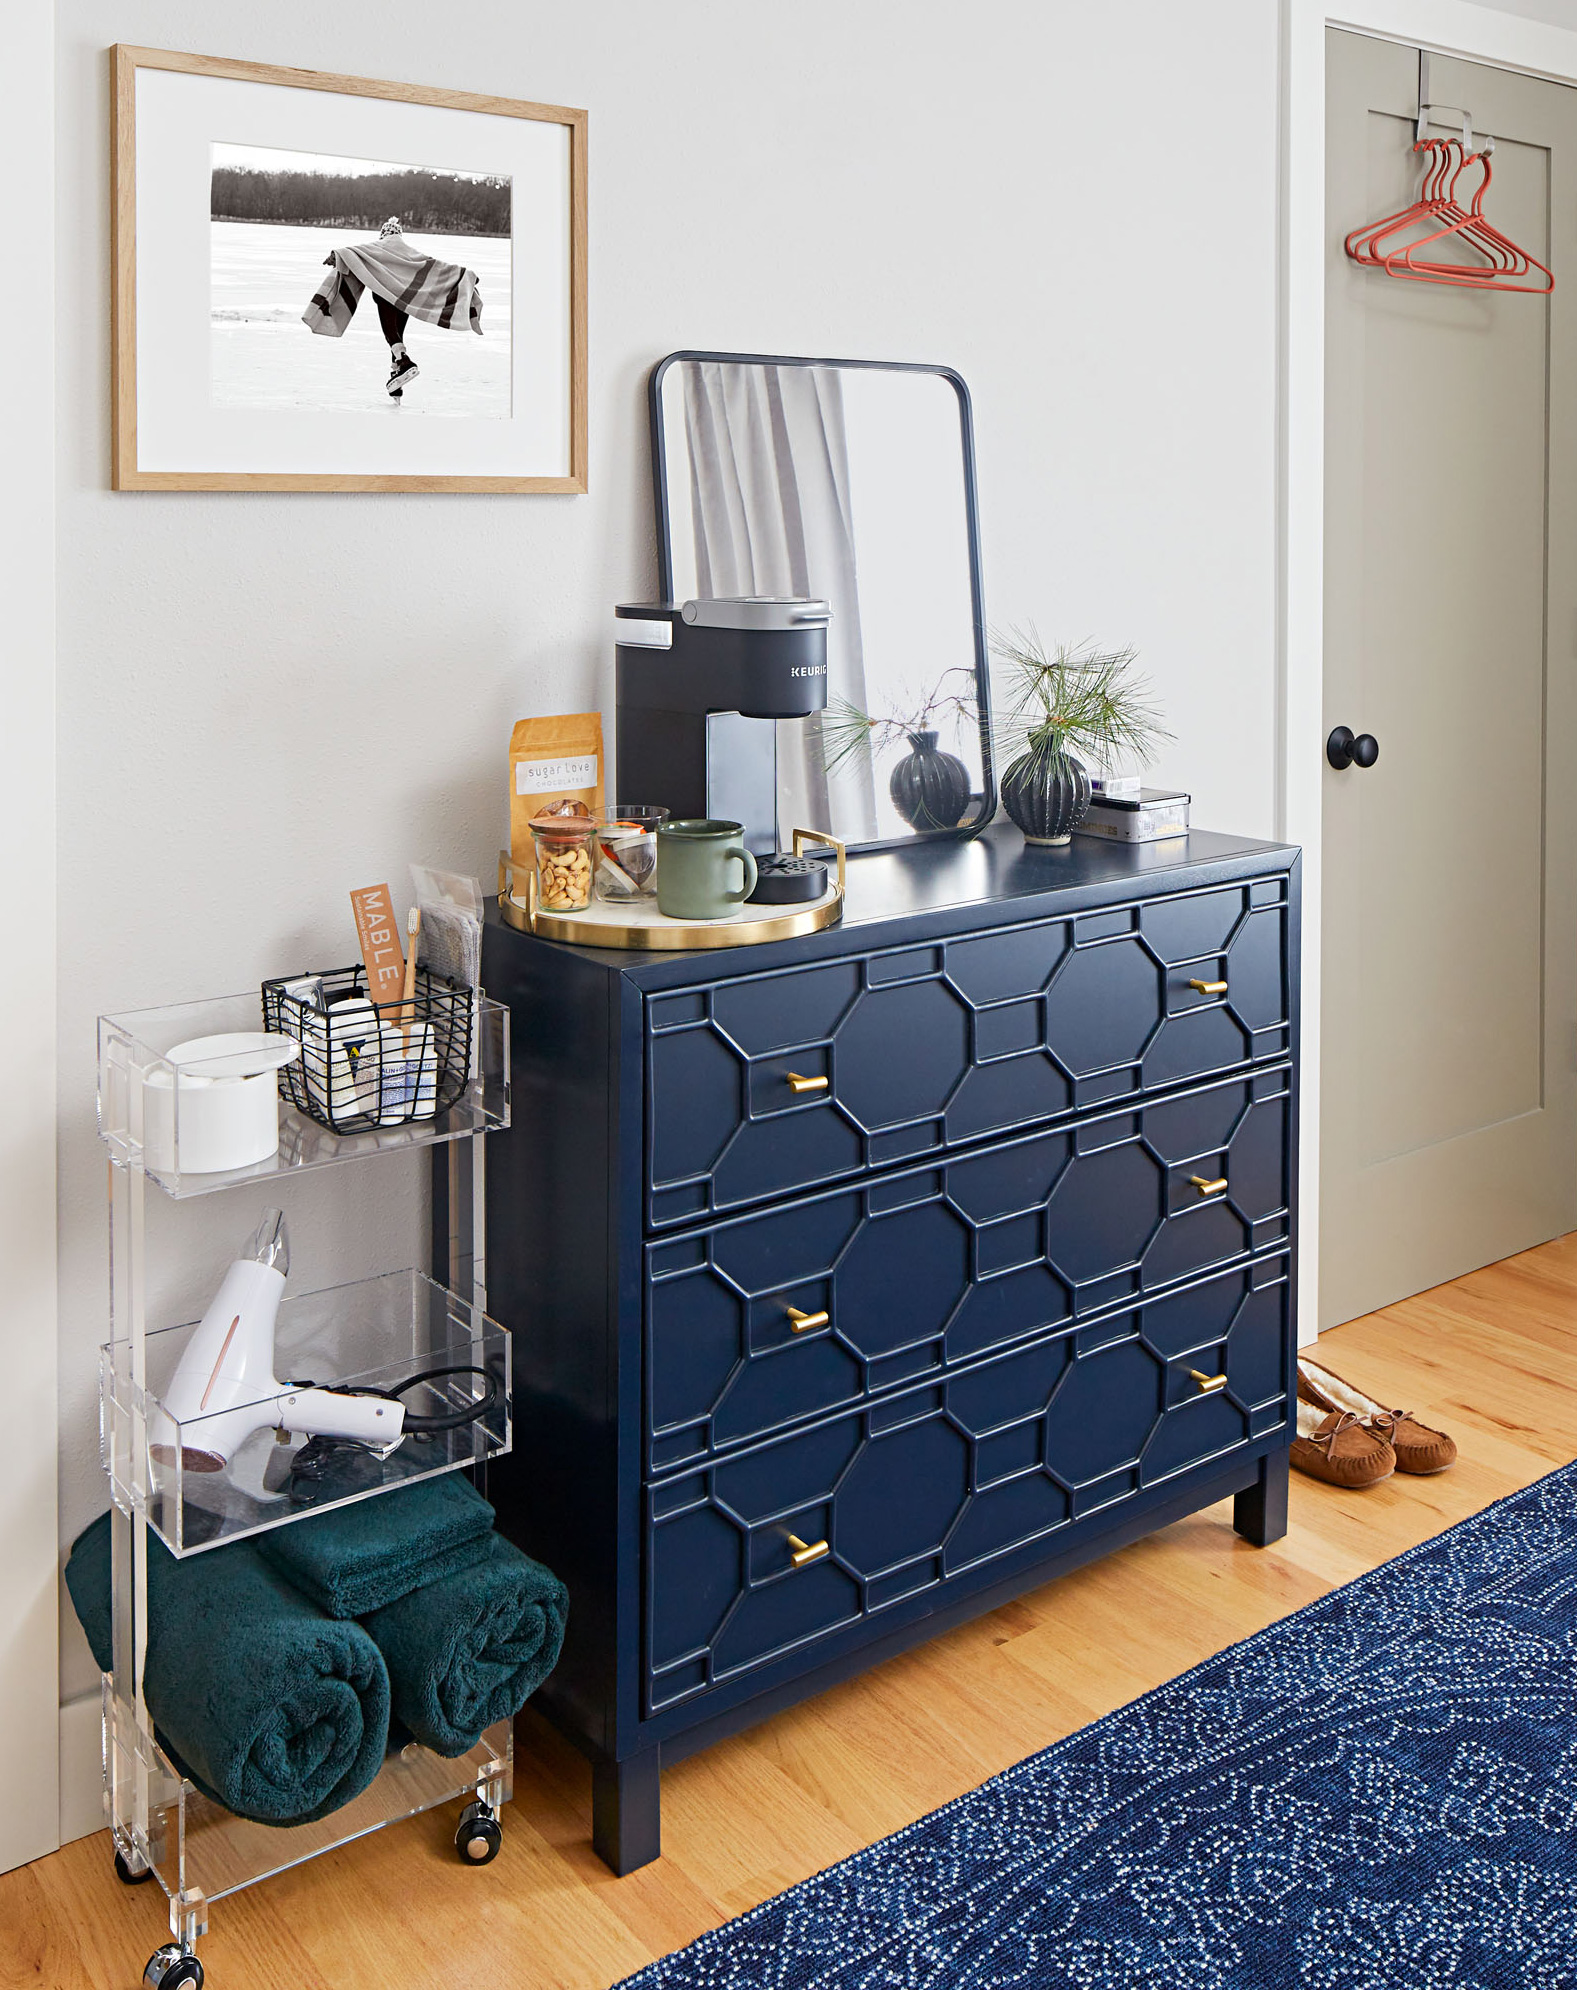 Clear surface: Avoid starkness, but leave an empty area for unpacking personal items like a wallet or makeup.